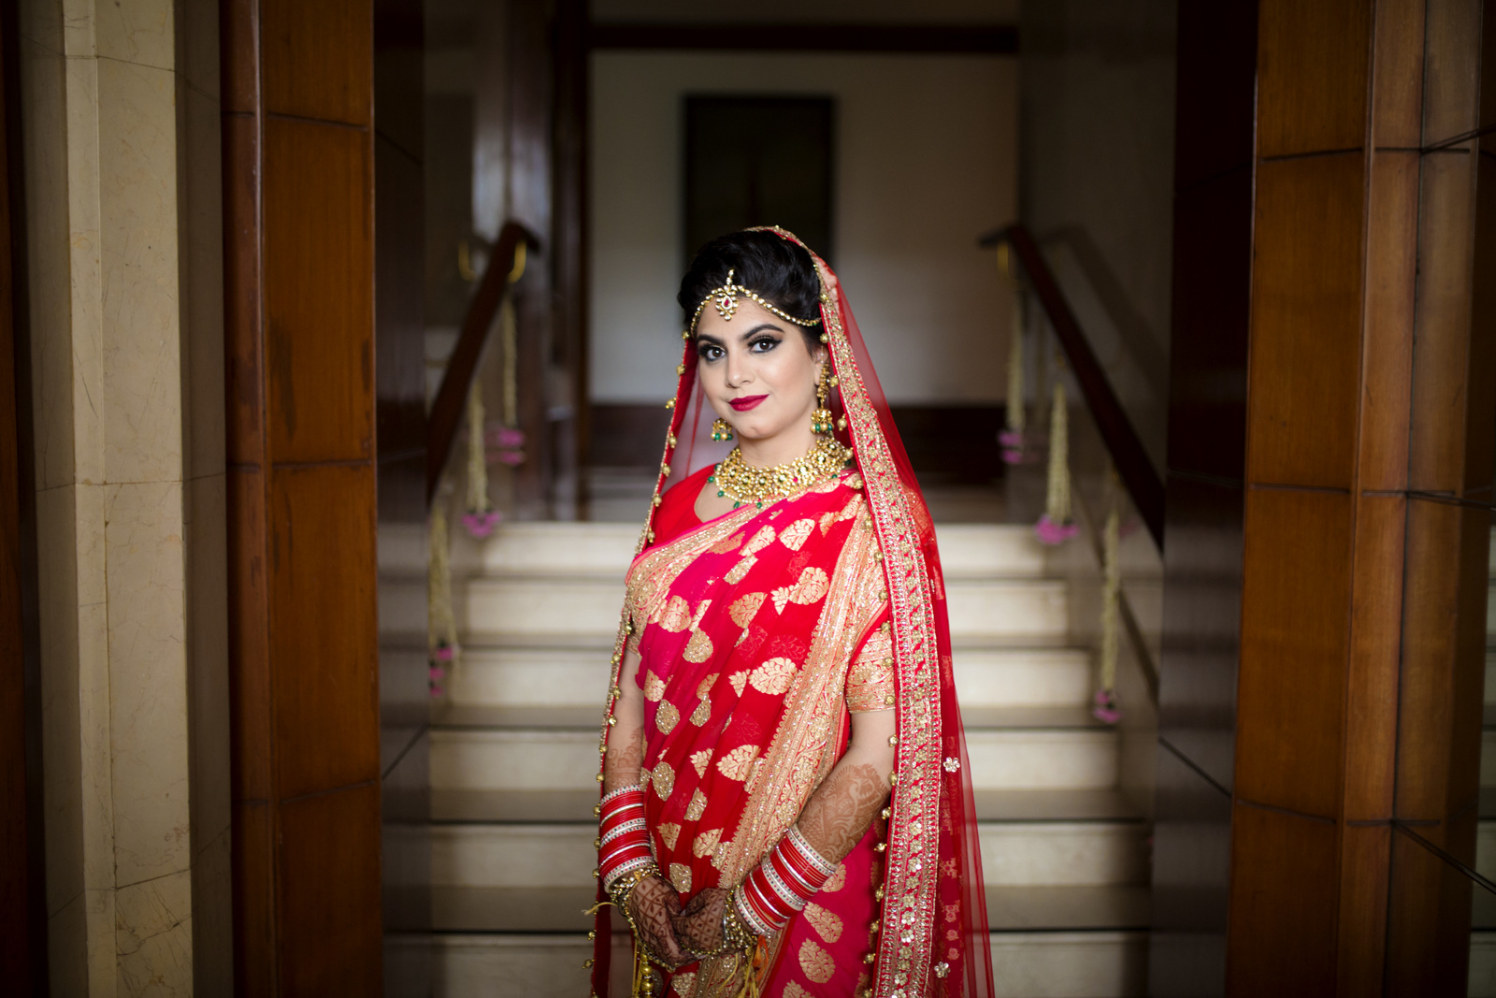 The Bride Looking Stunning In Crimson Red Lehenga With Golden Embroidery by Arpit Gulati Wedding-photography Bridal-jewellery-and-accessories | Weddings Photos & Ideas